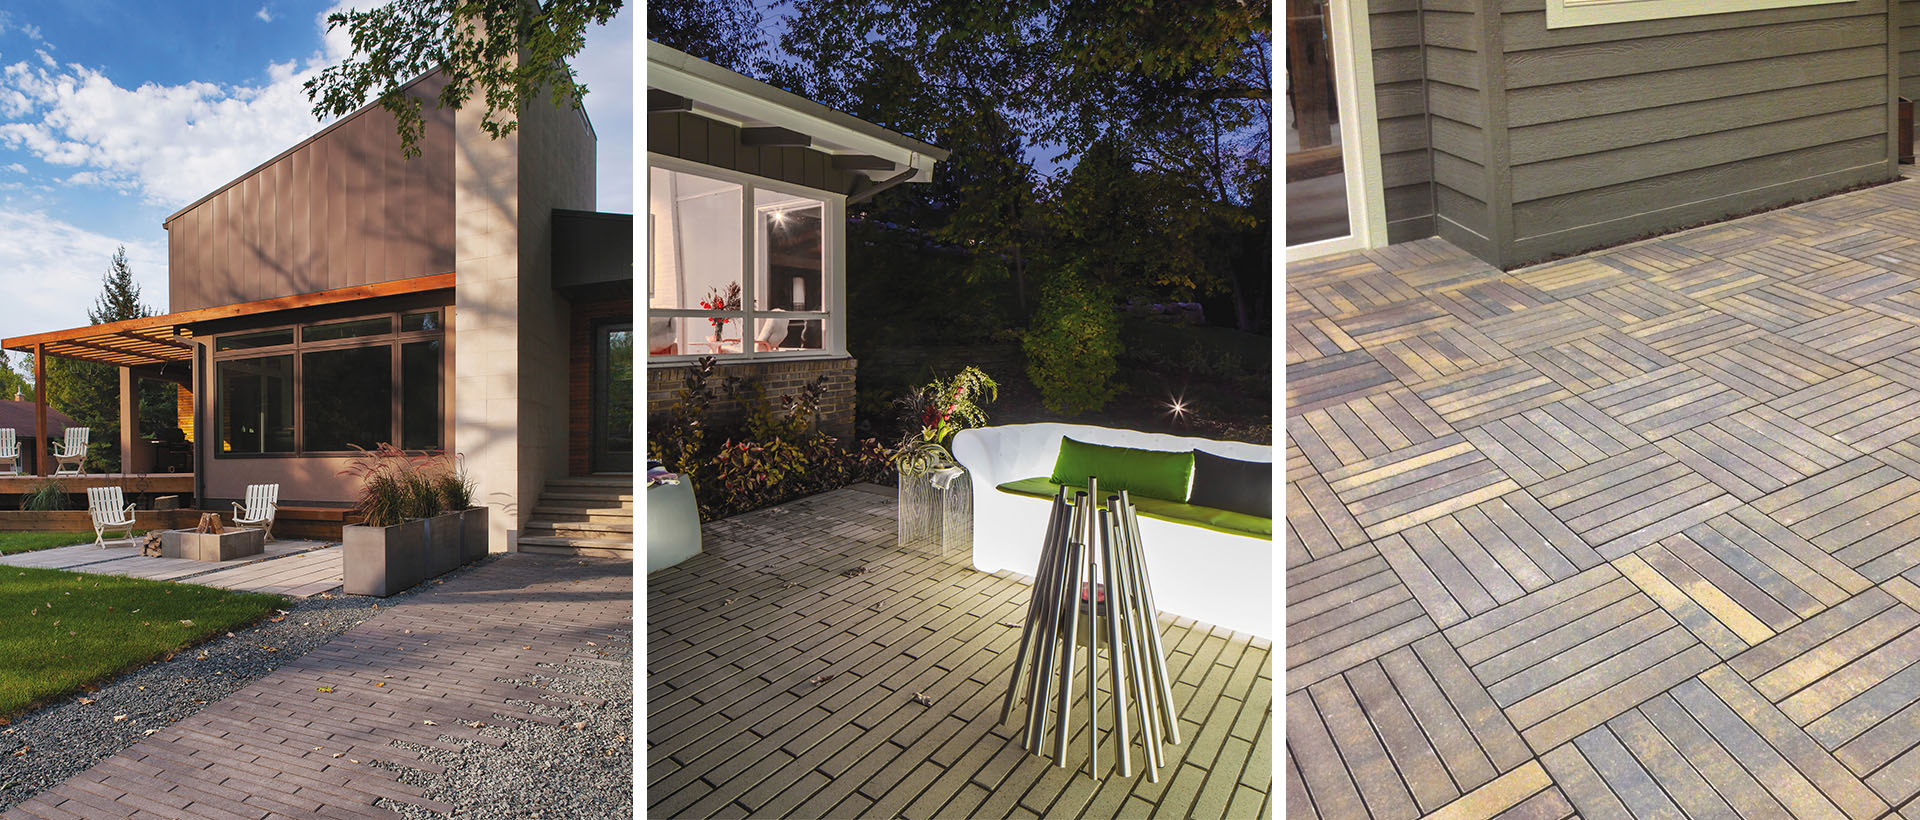 The narrow profile of the Broadmour Plank paver creates a unique, contemporary look for walkways, boulevards and patios.